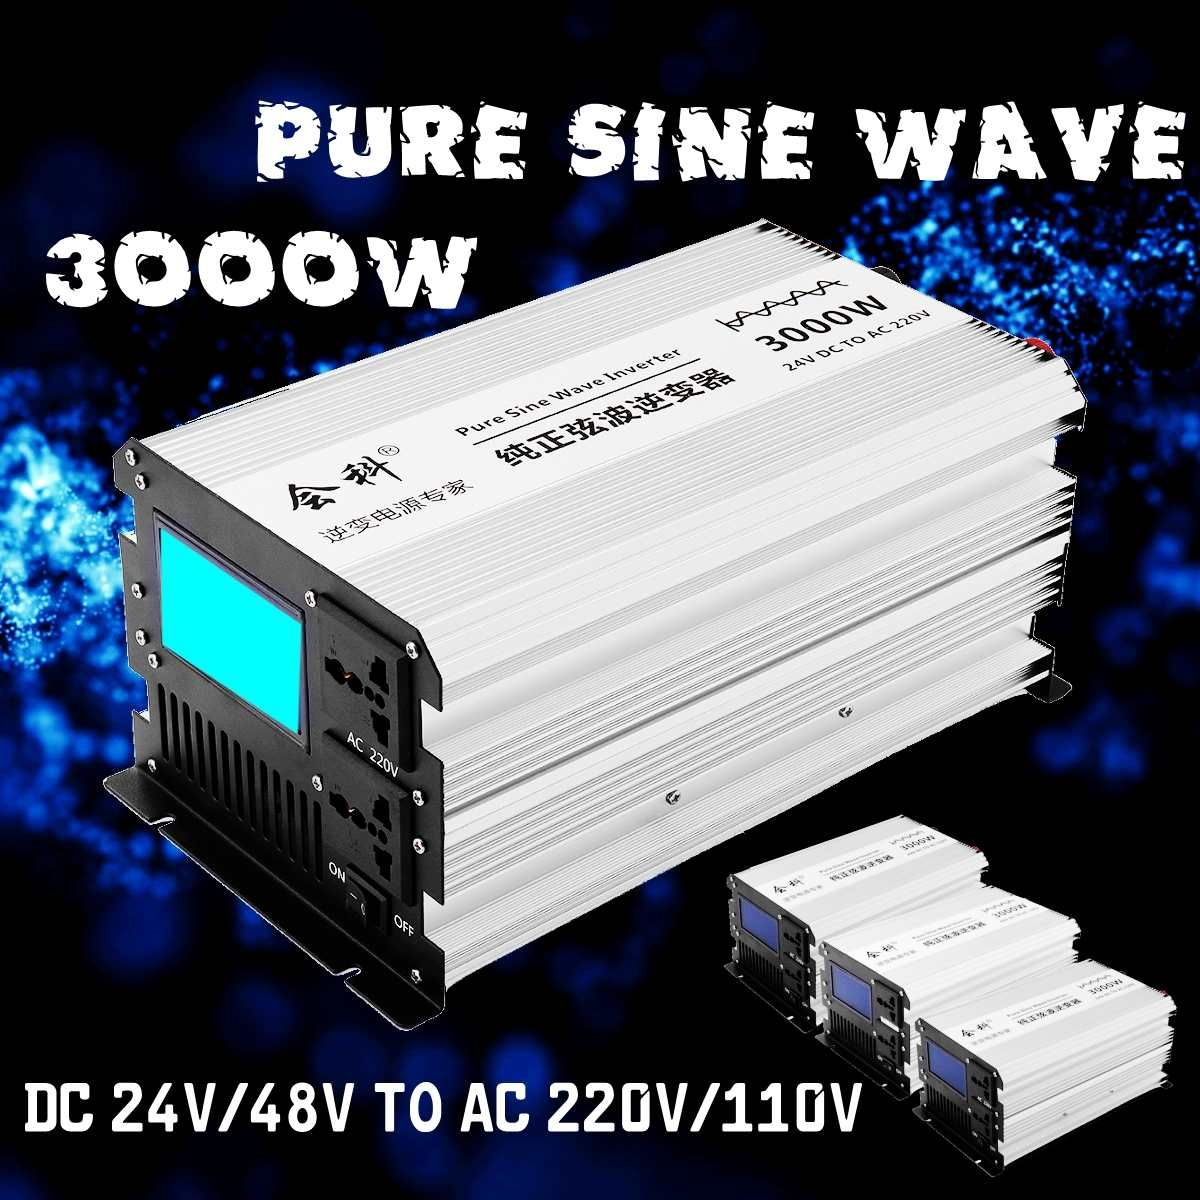 Inverter reine sinus welle 1500 W 3000 W Peaks 12 v/24 v/48 v zu AC110v/ 220 v LCD display Inverter netzteil